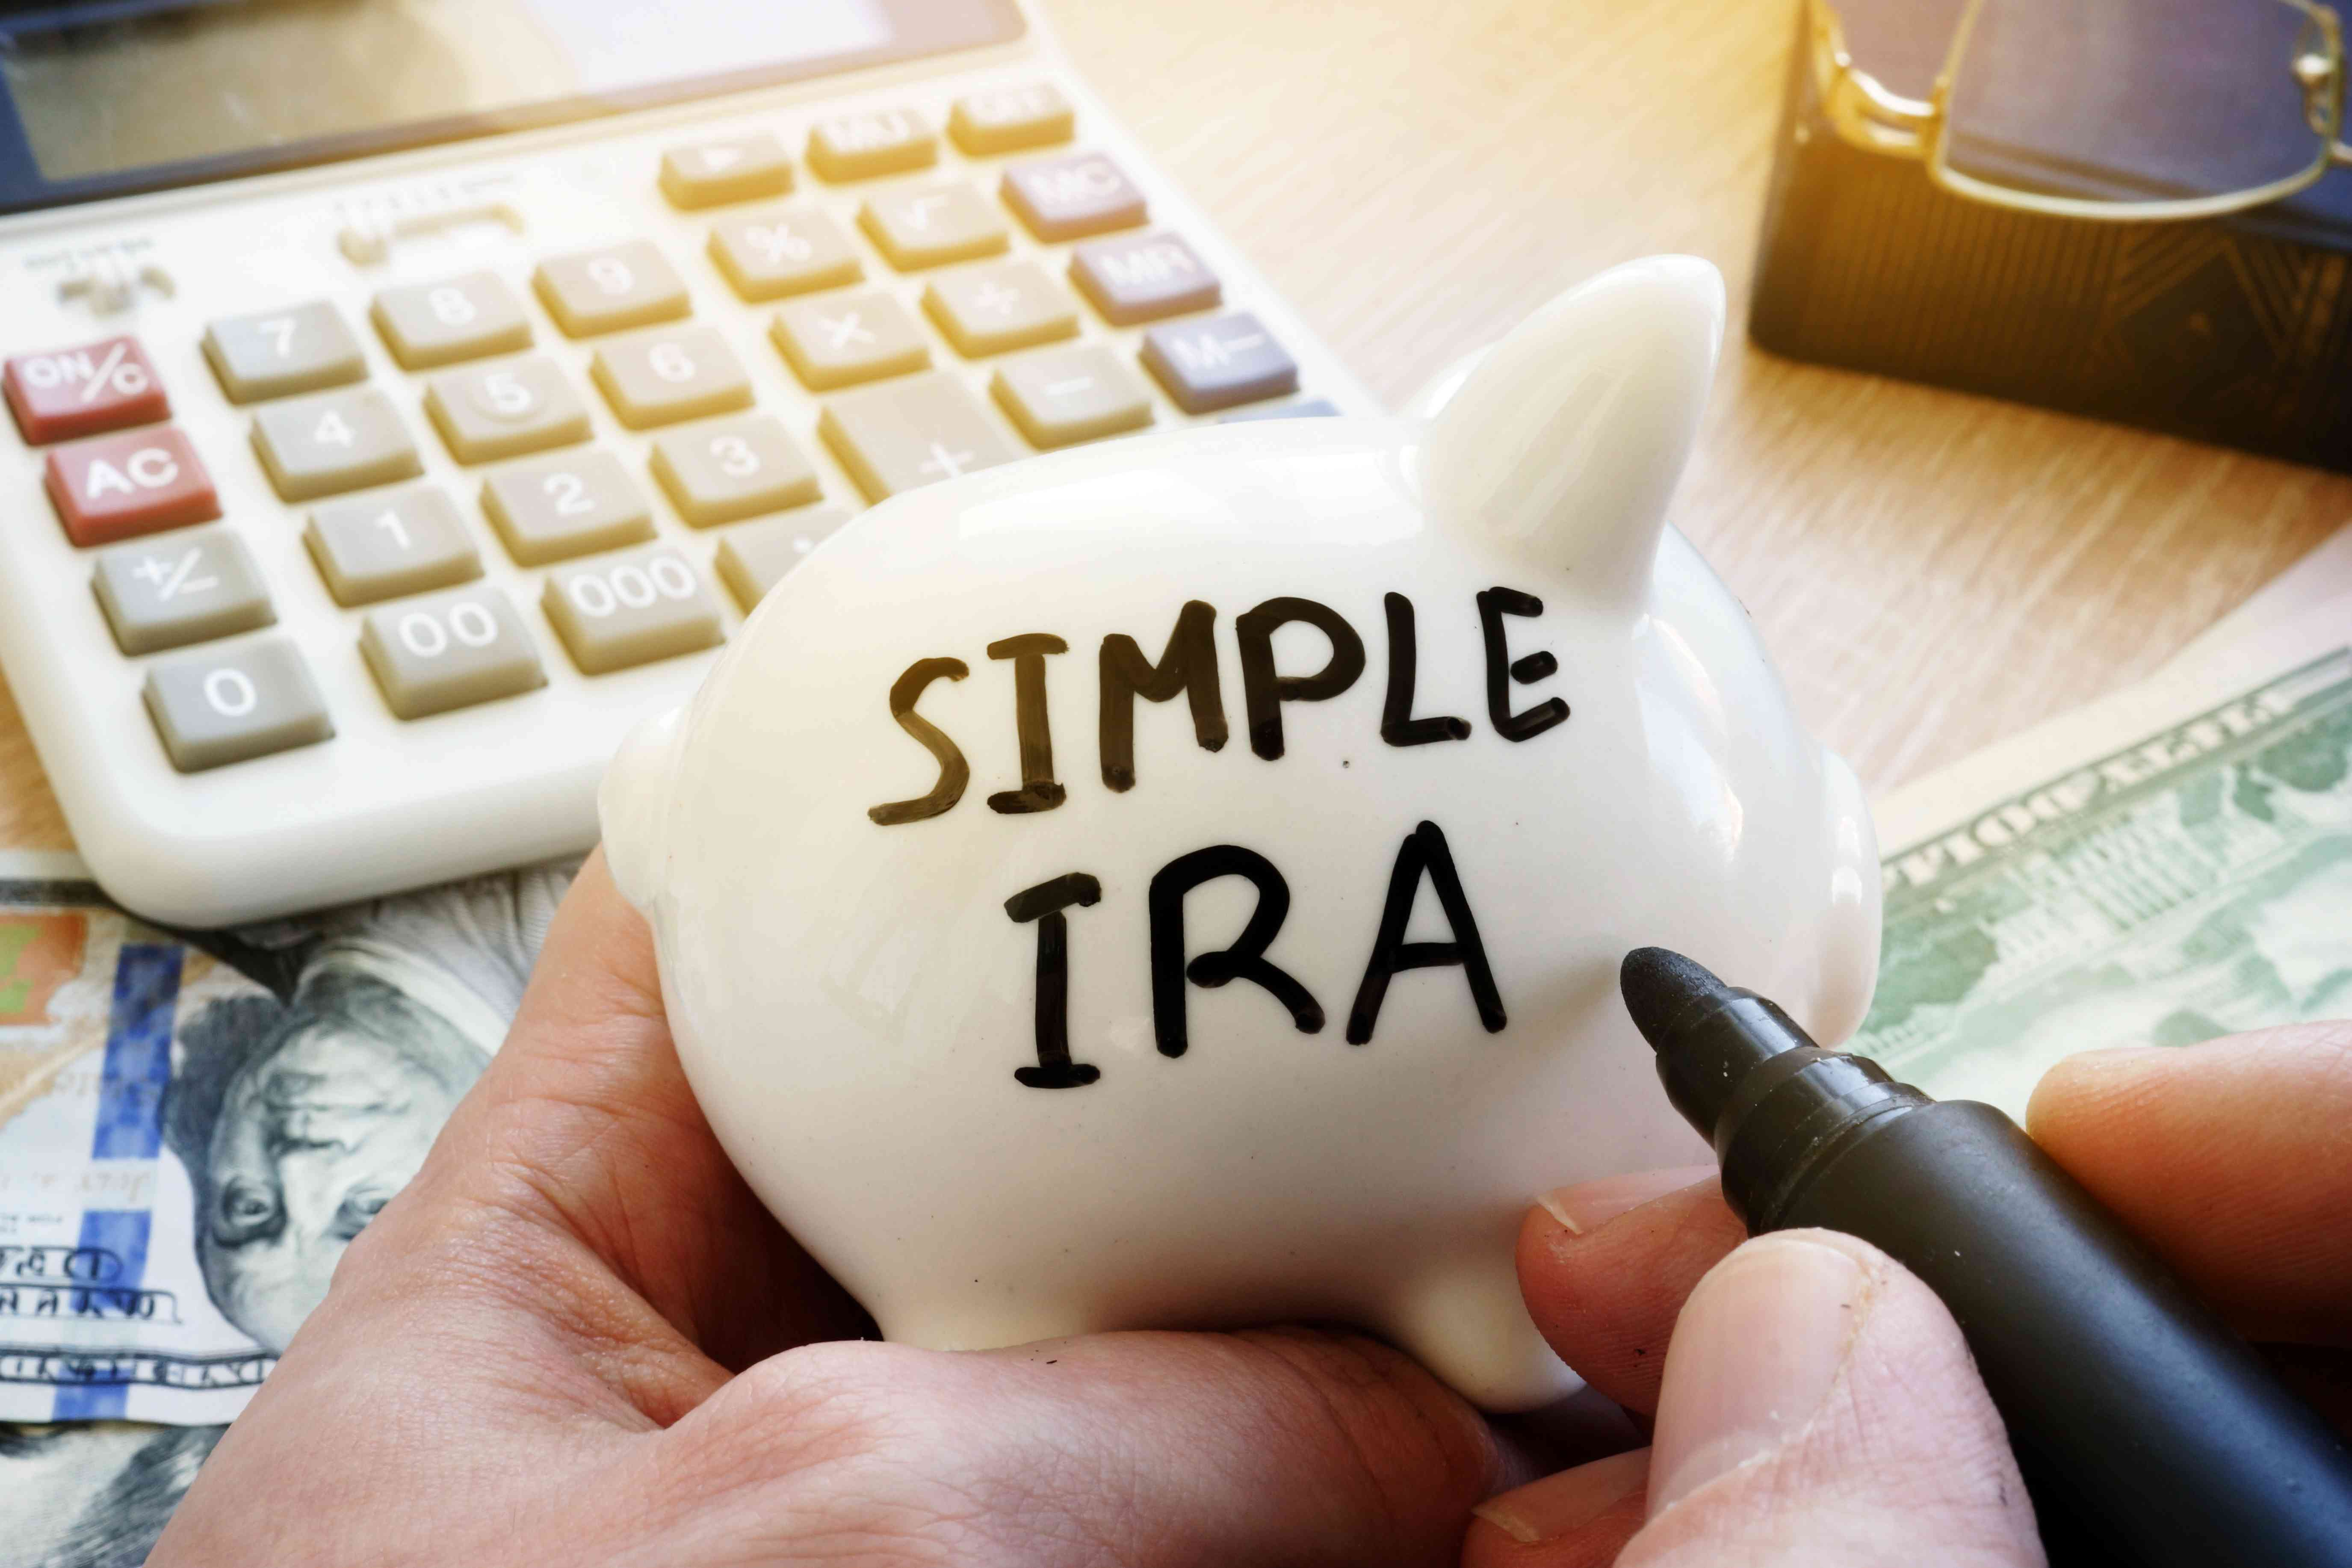 Calculator, money, and piggy bank with Simple IRA written on it